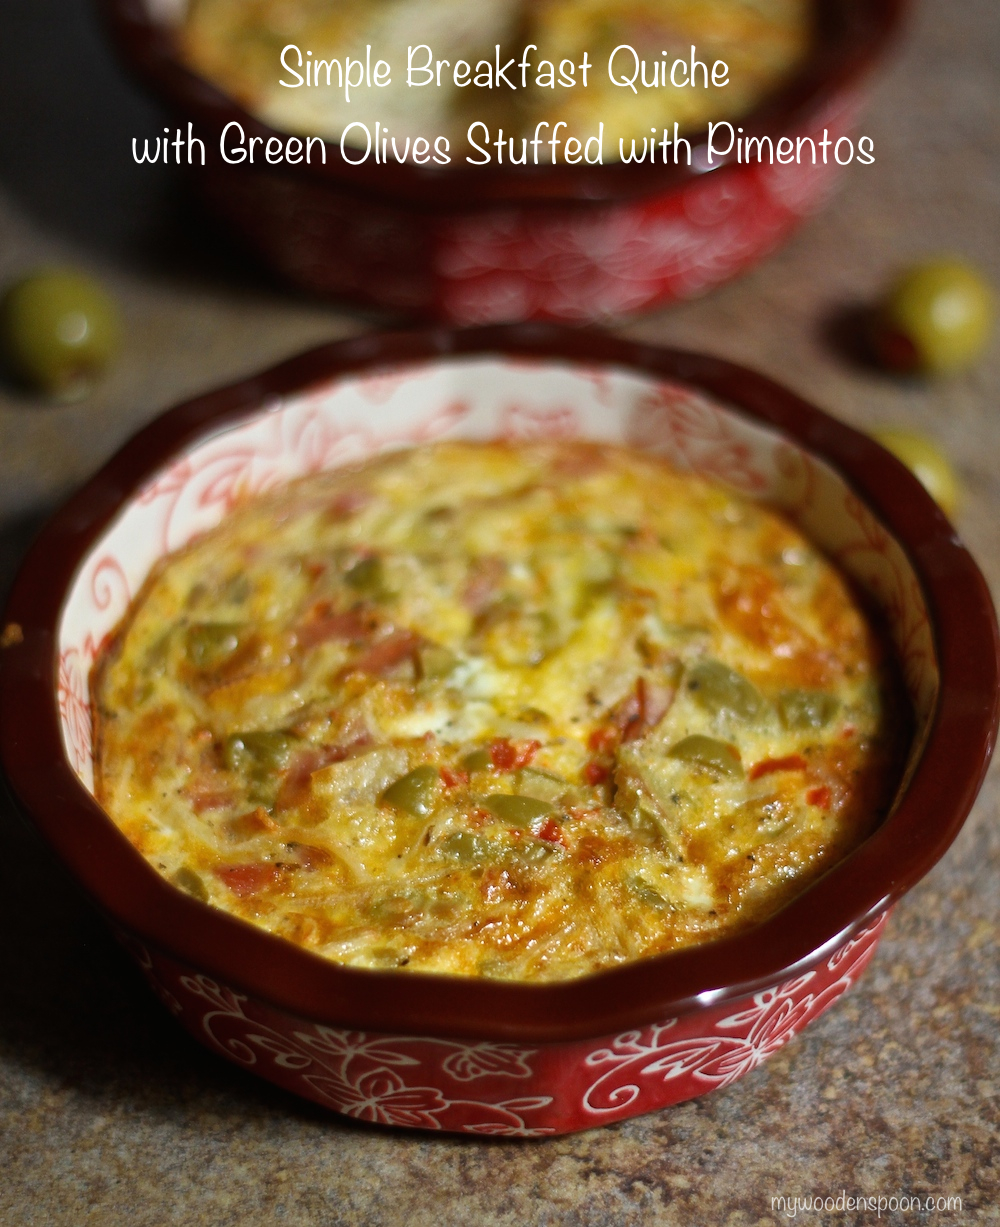 Breakfast Quiche with Green Olives Stuff with Pimentos